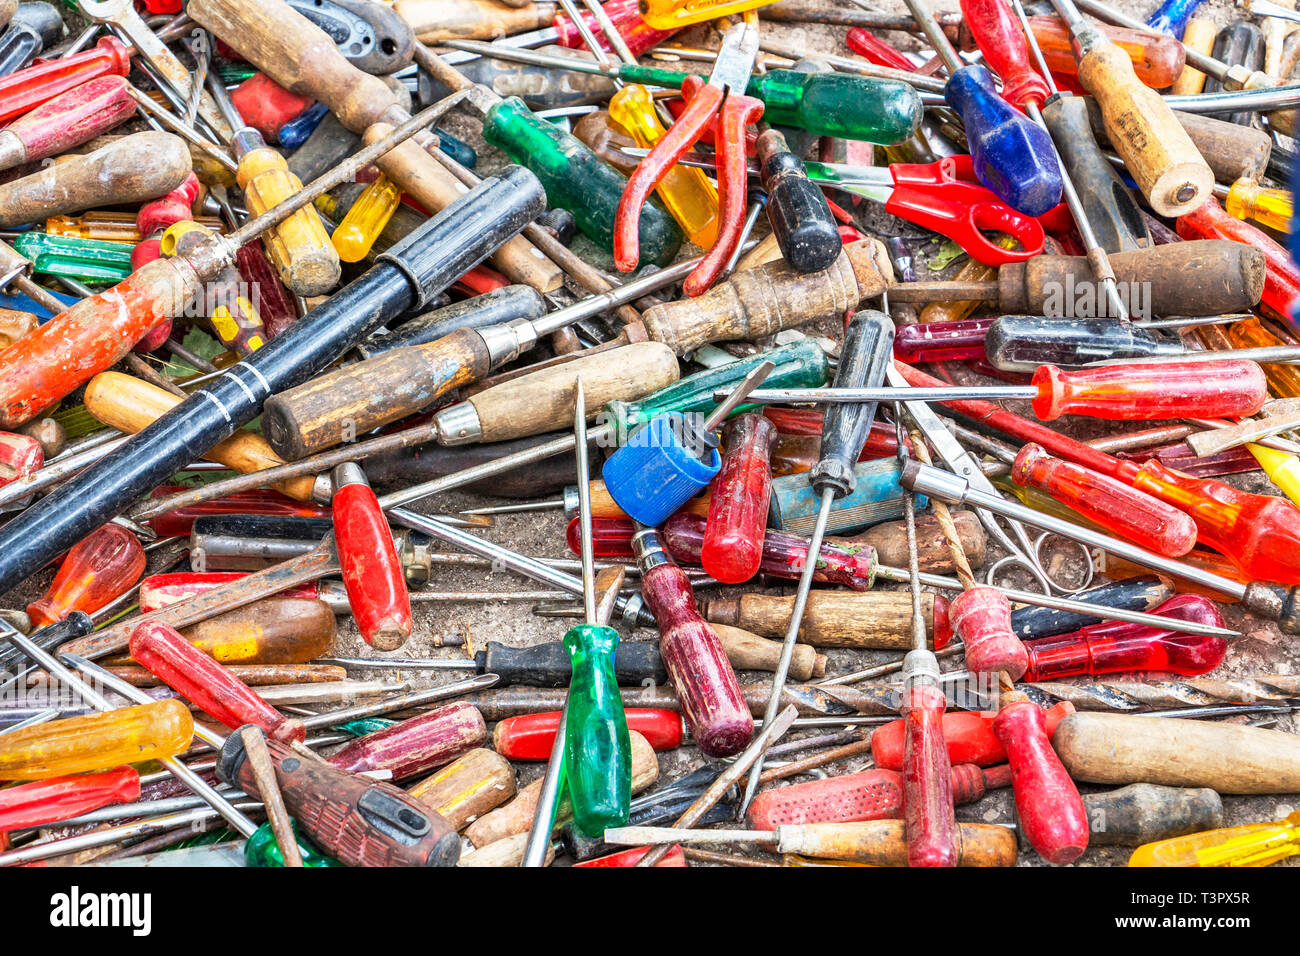 Disorderly scattered various hand tools, screwdrivers, hand tool texture background - Stock Image